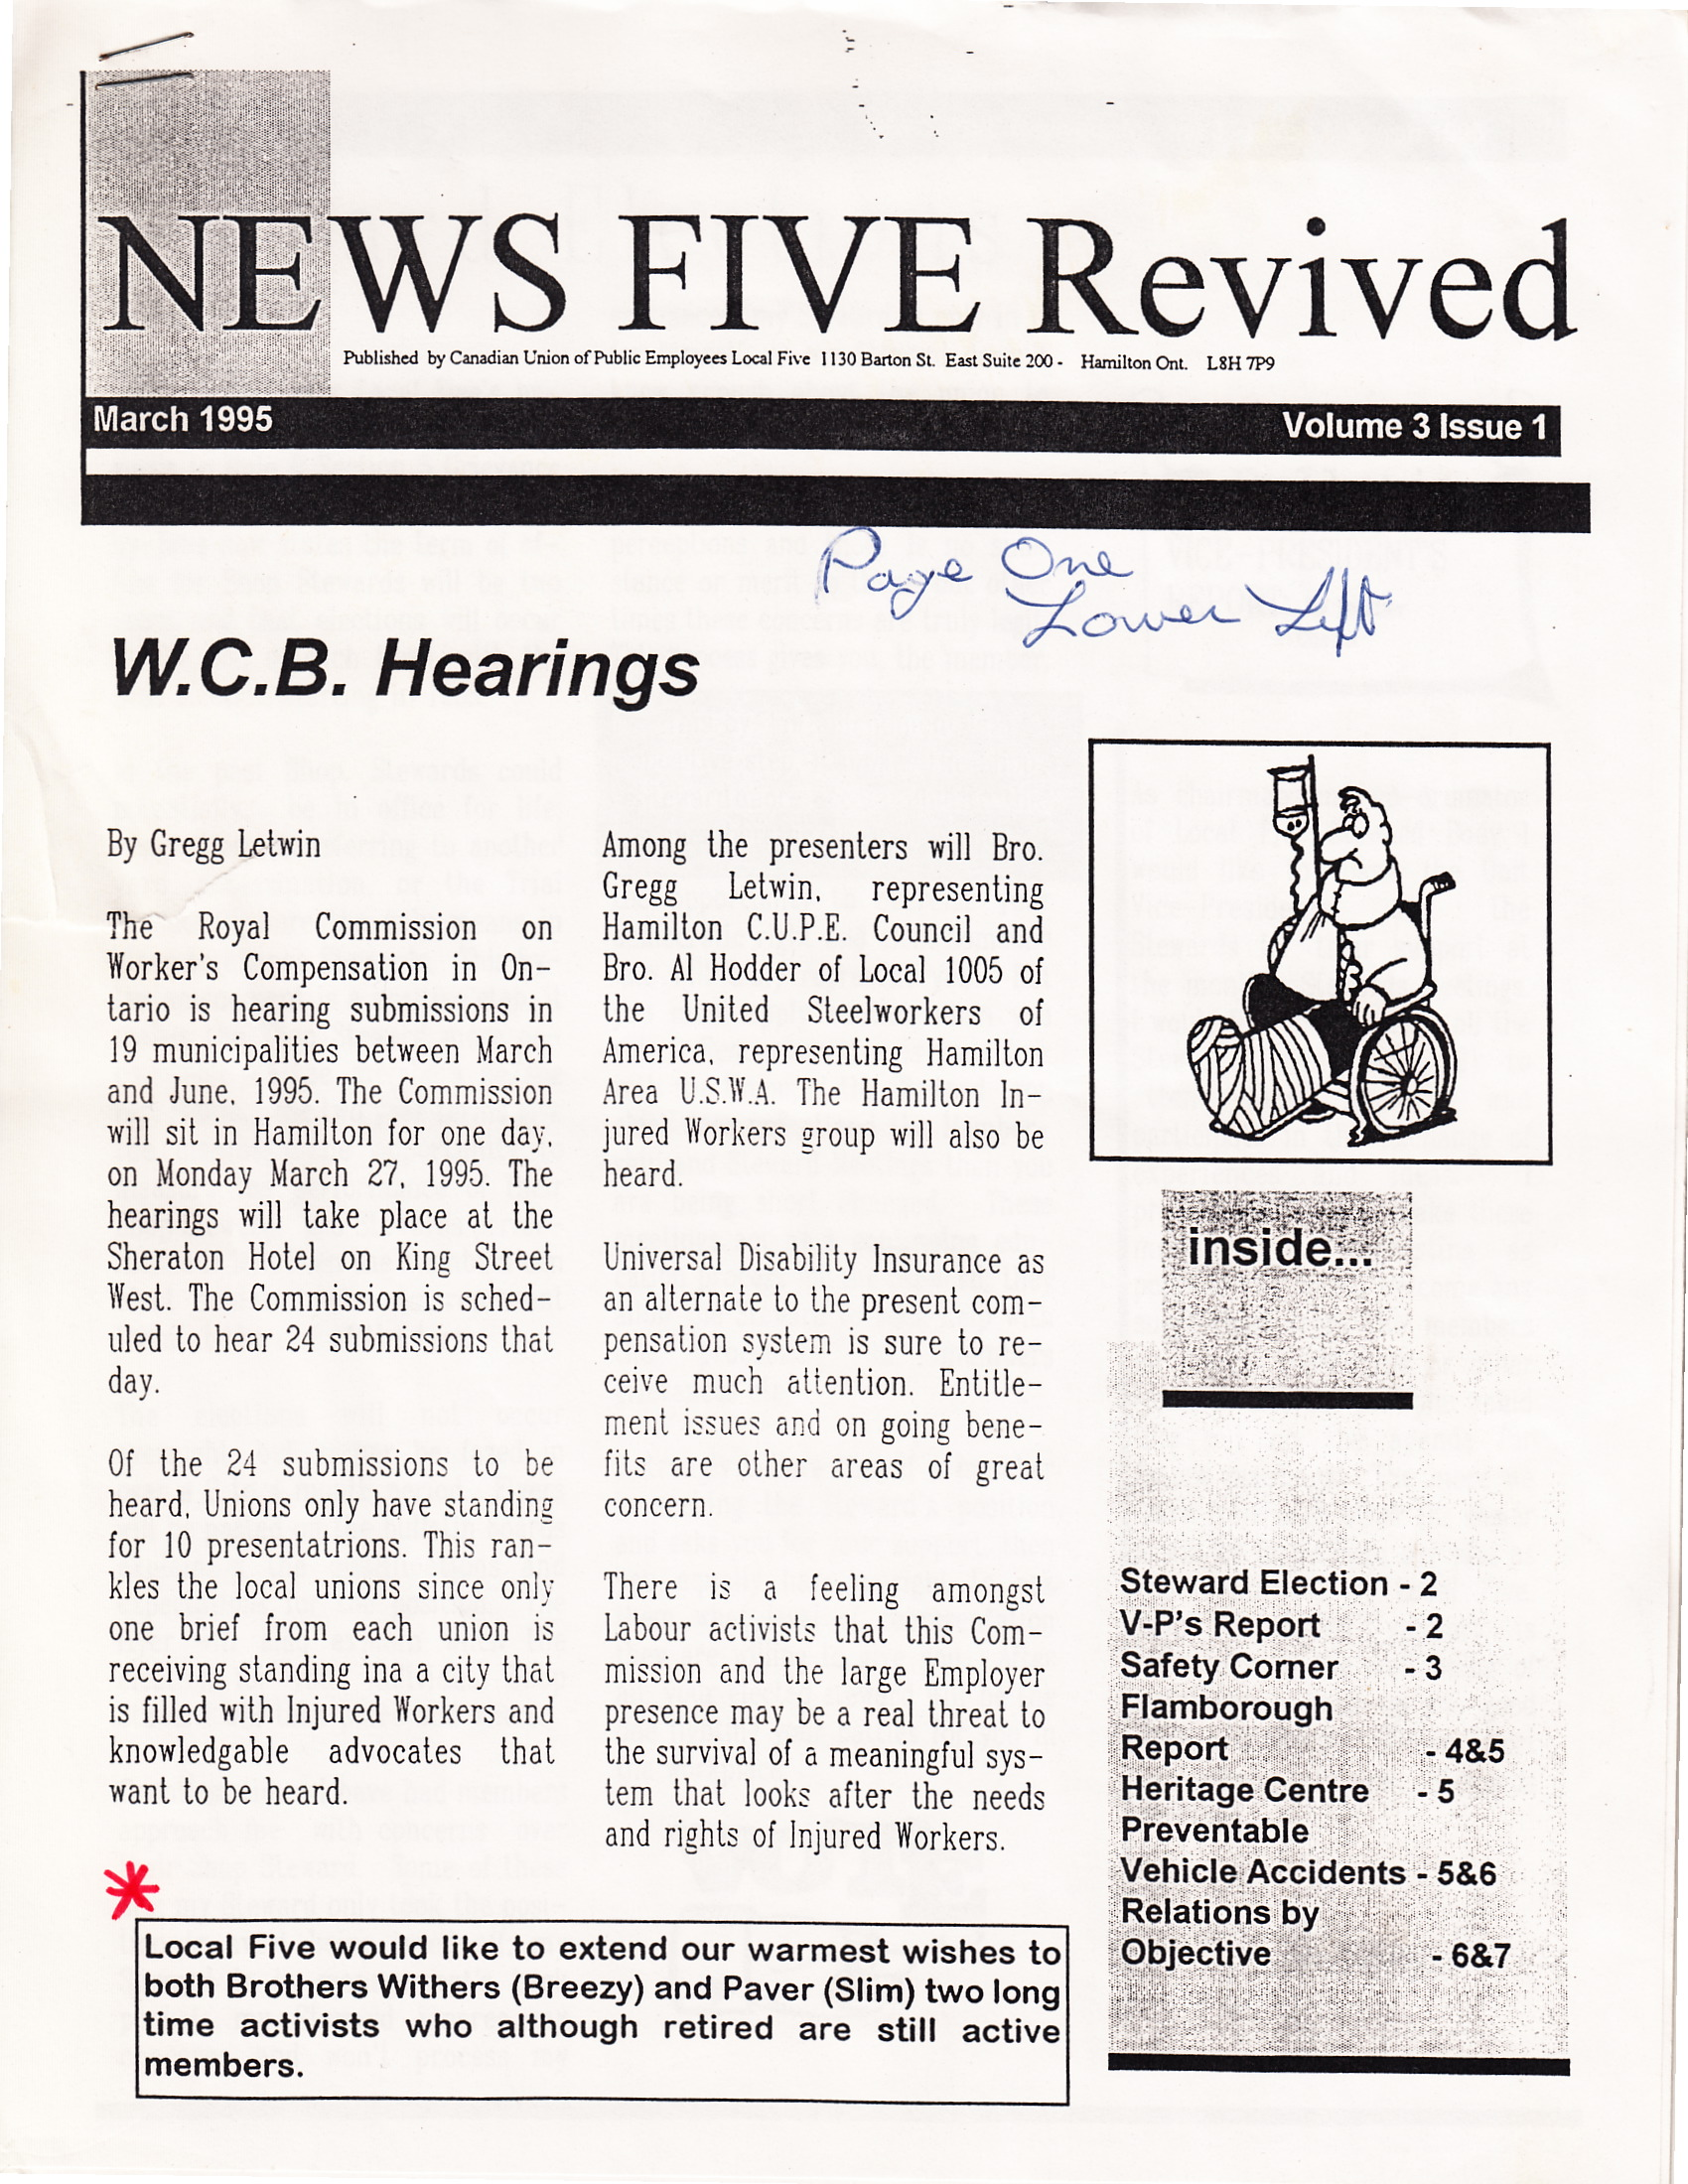 News Five Revived Cover, March 1995